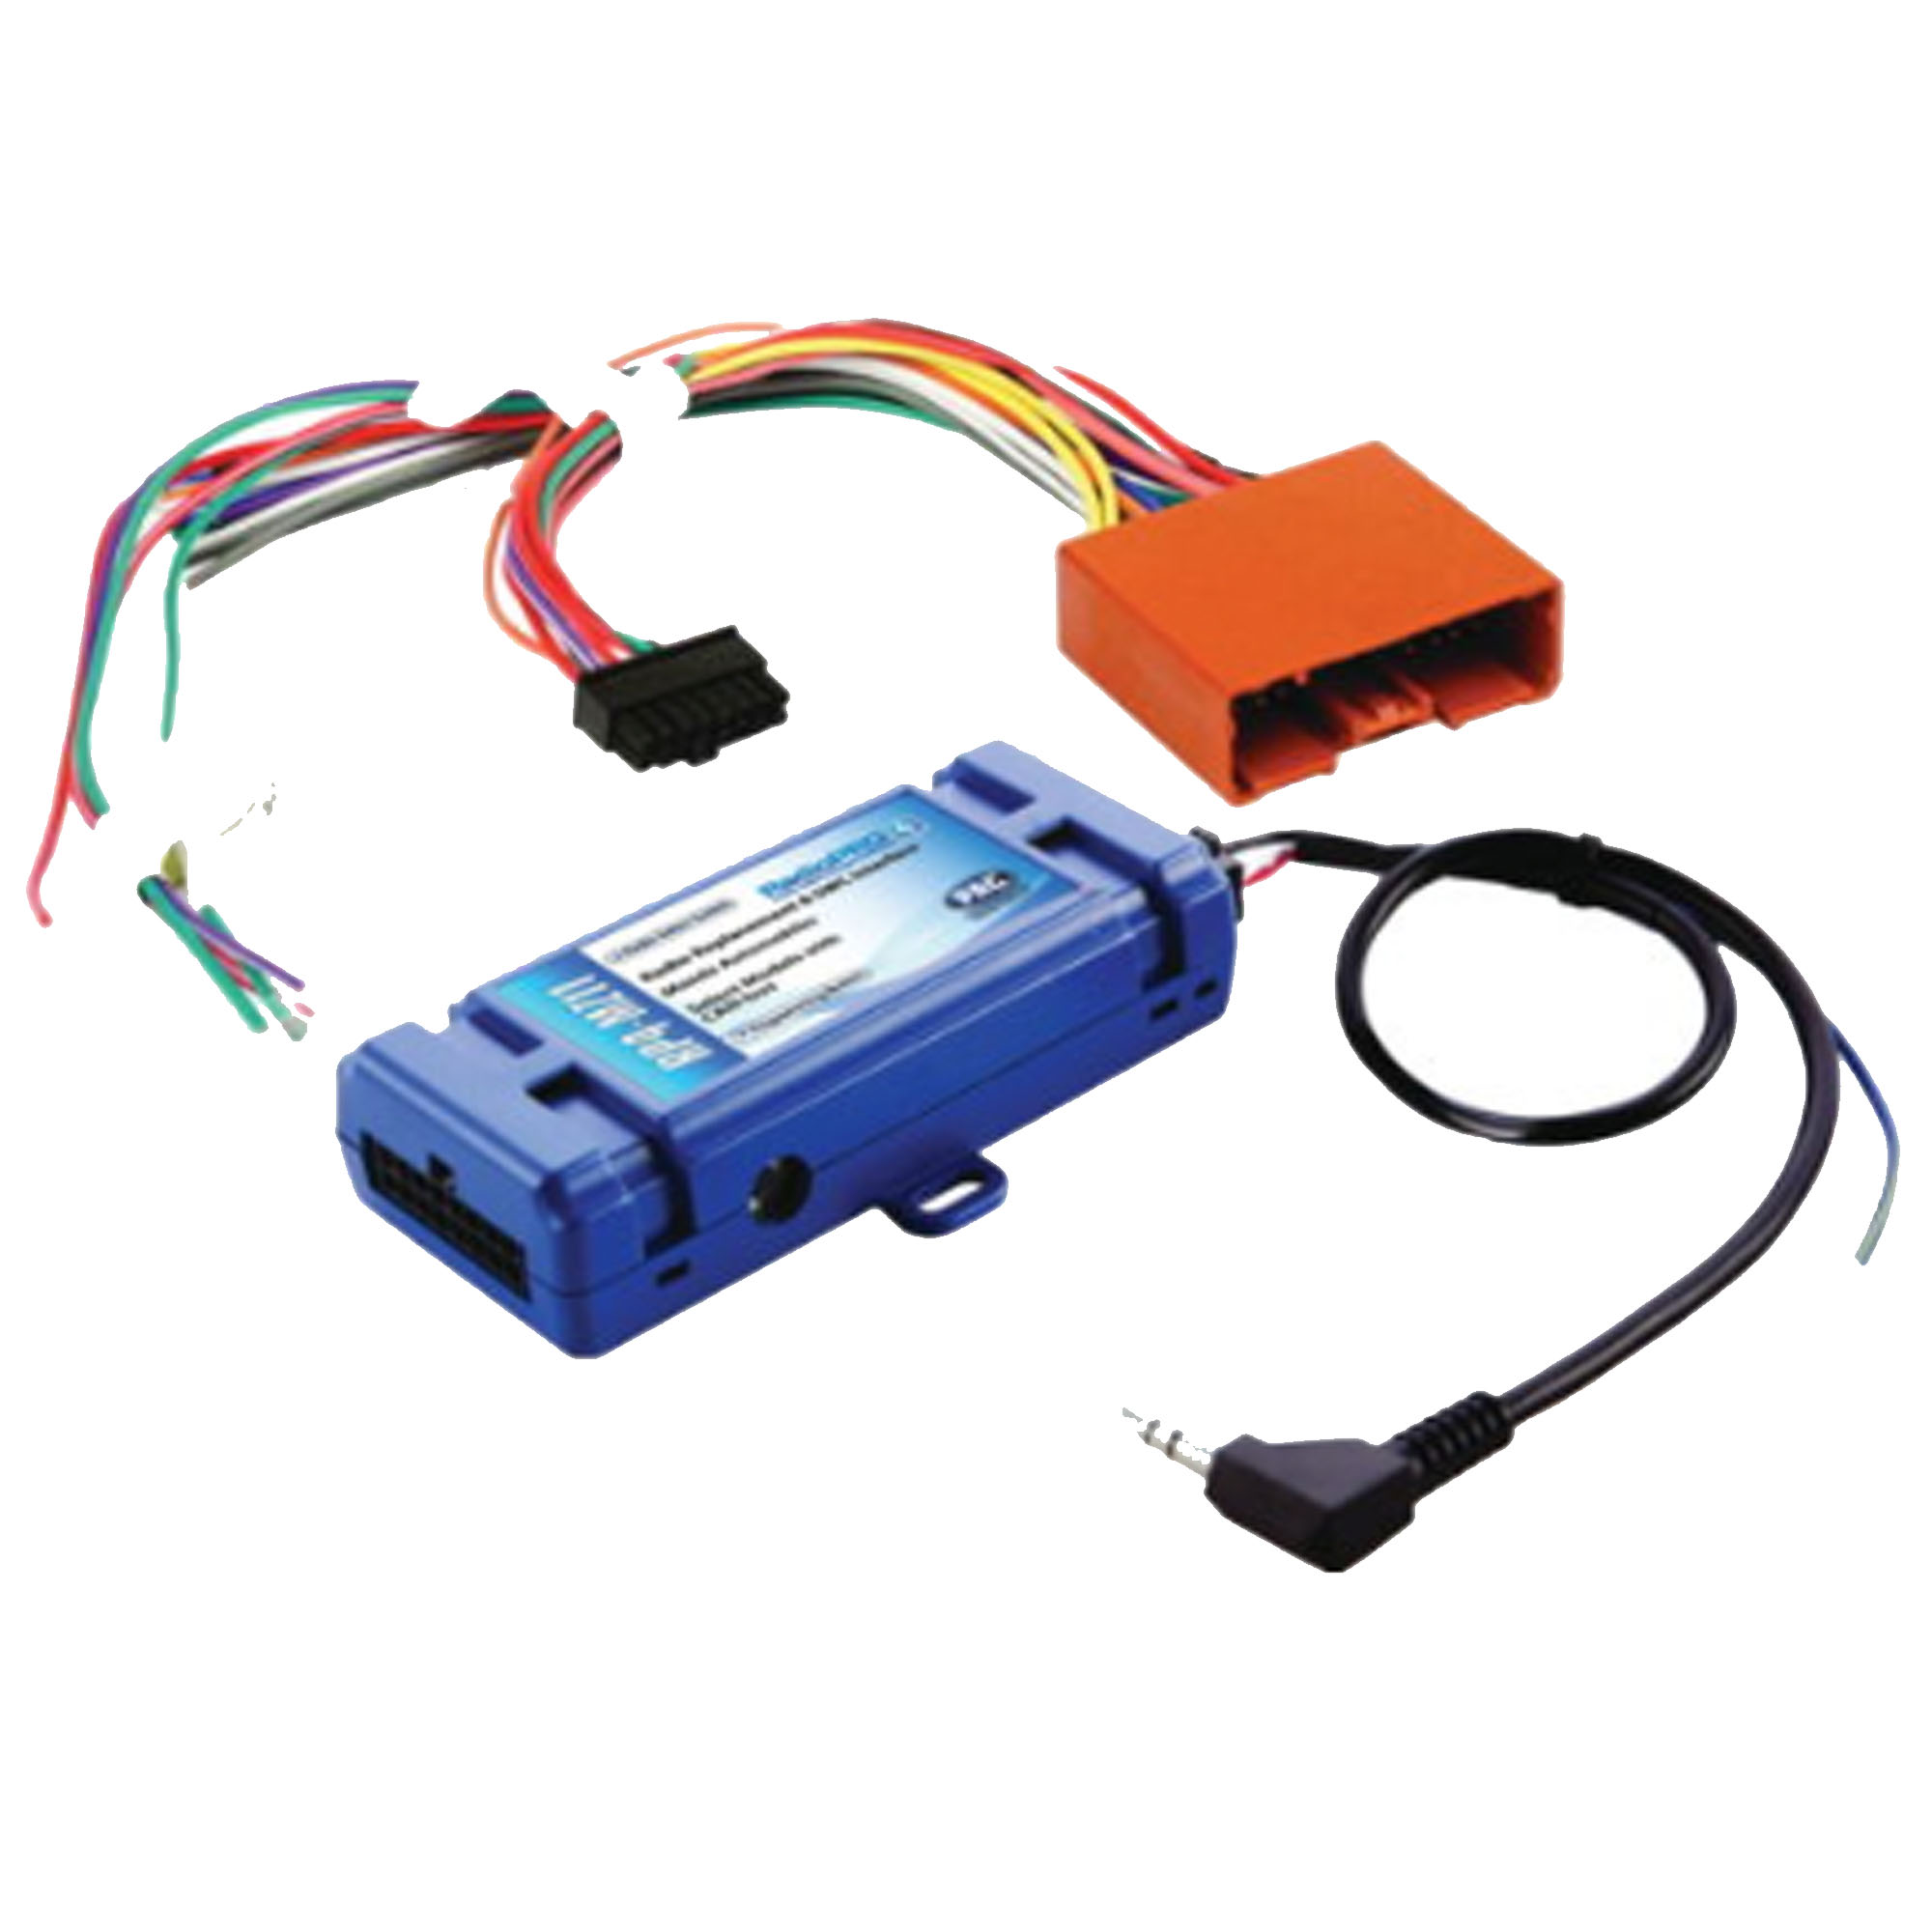 Details about PAC RP4-MZ11 RadioPro Radio Replacement Interface For Select  Mazda Vehicles